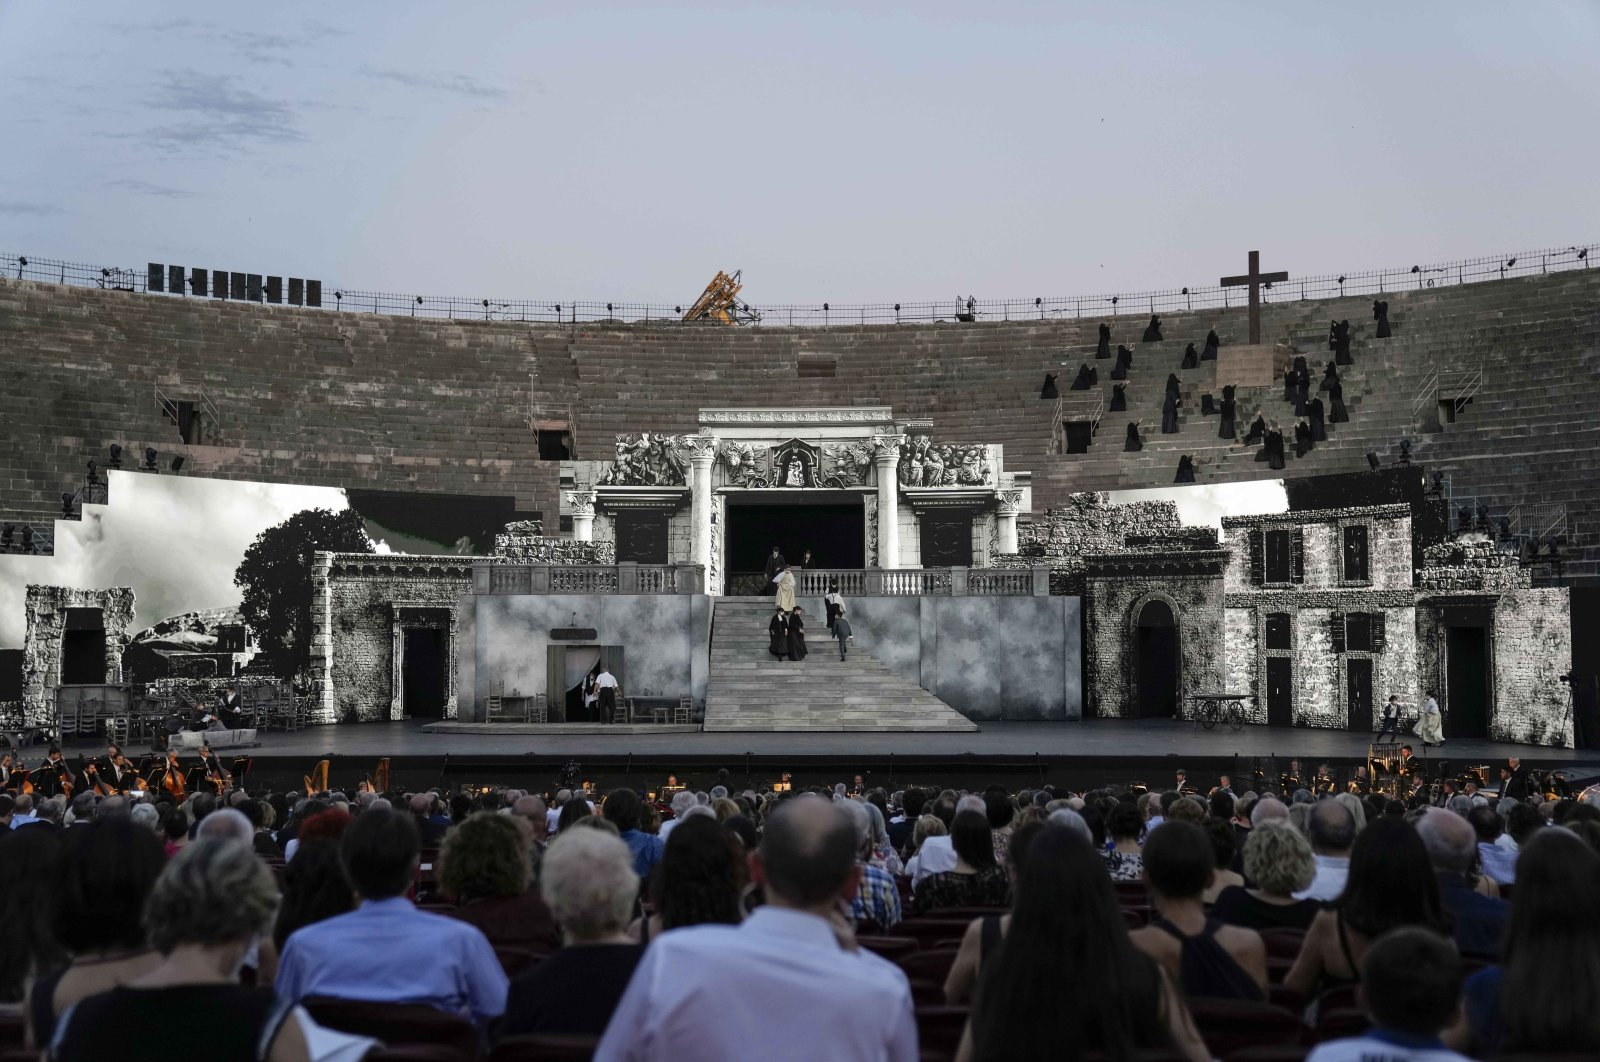 """A view of the stage during '""""Cavalleria Rusticana"""" lyric opera, at the Arena di Verona theatre, in Verona, Italy, June 25, 2021. (AP Photo)"""